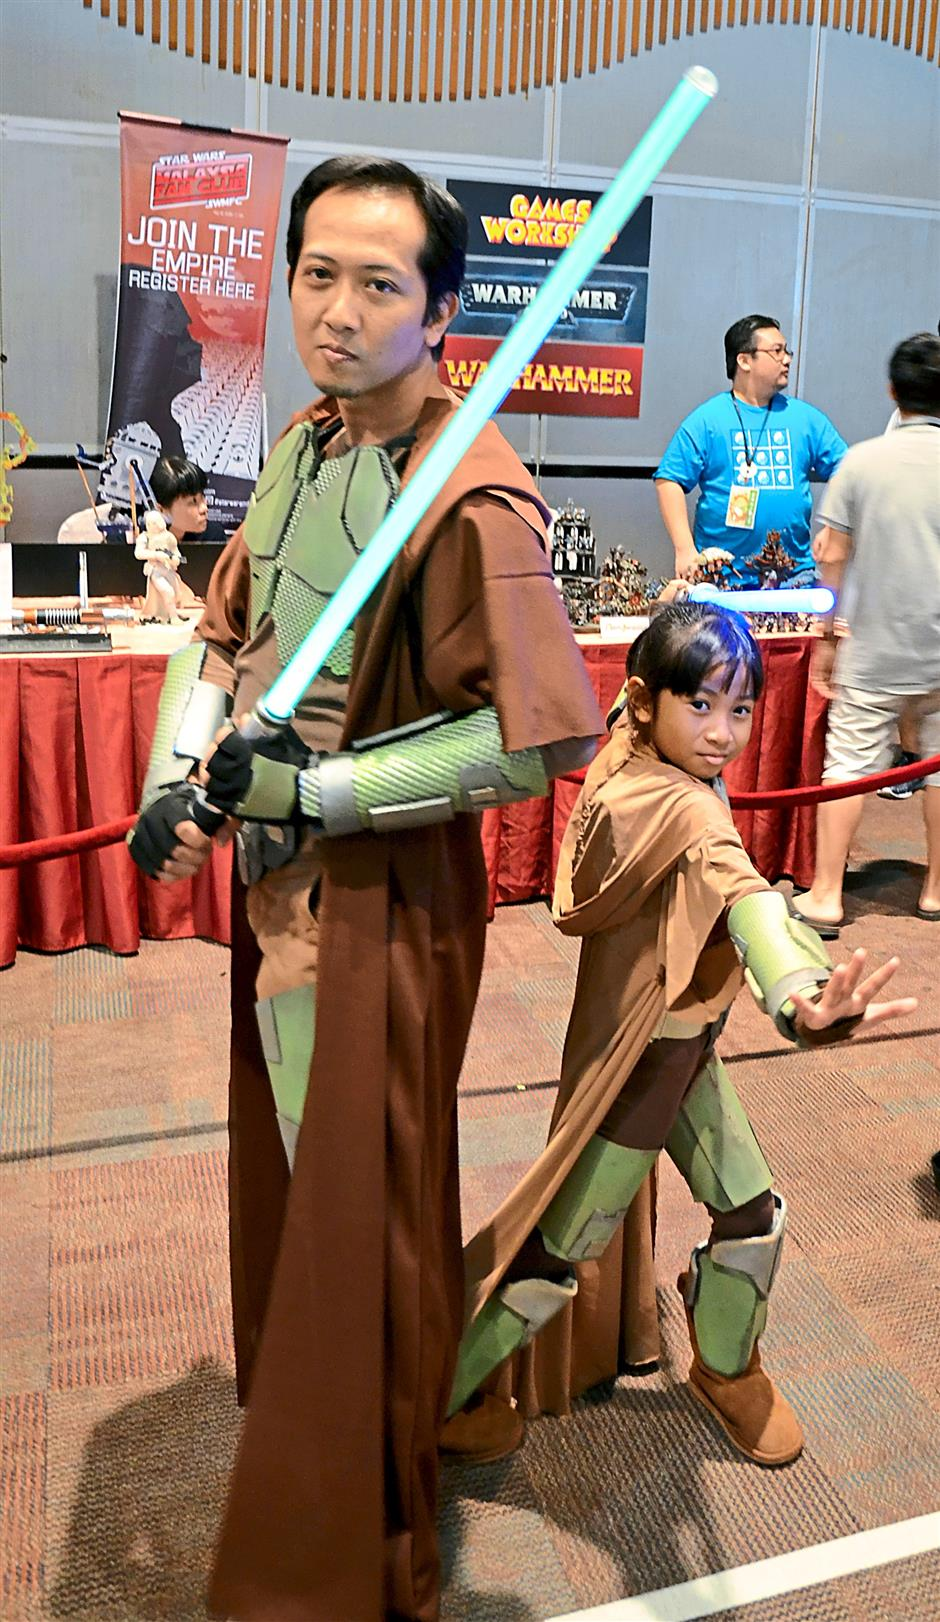 Sami Sukit, 35 (left) and his daughter Dahlia Alyssa, 9 (right) posing for the camera in a curious mix of armour and brown Jedi robes, during the recent AniManGaki 2014 two-day gathering at Sunway Pyramid Convention Centre.